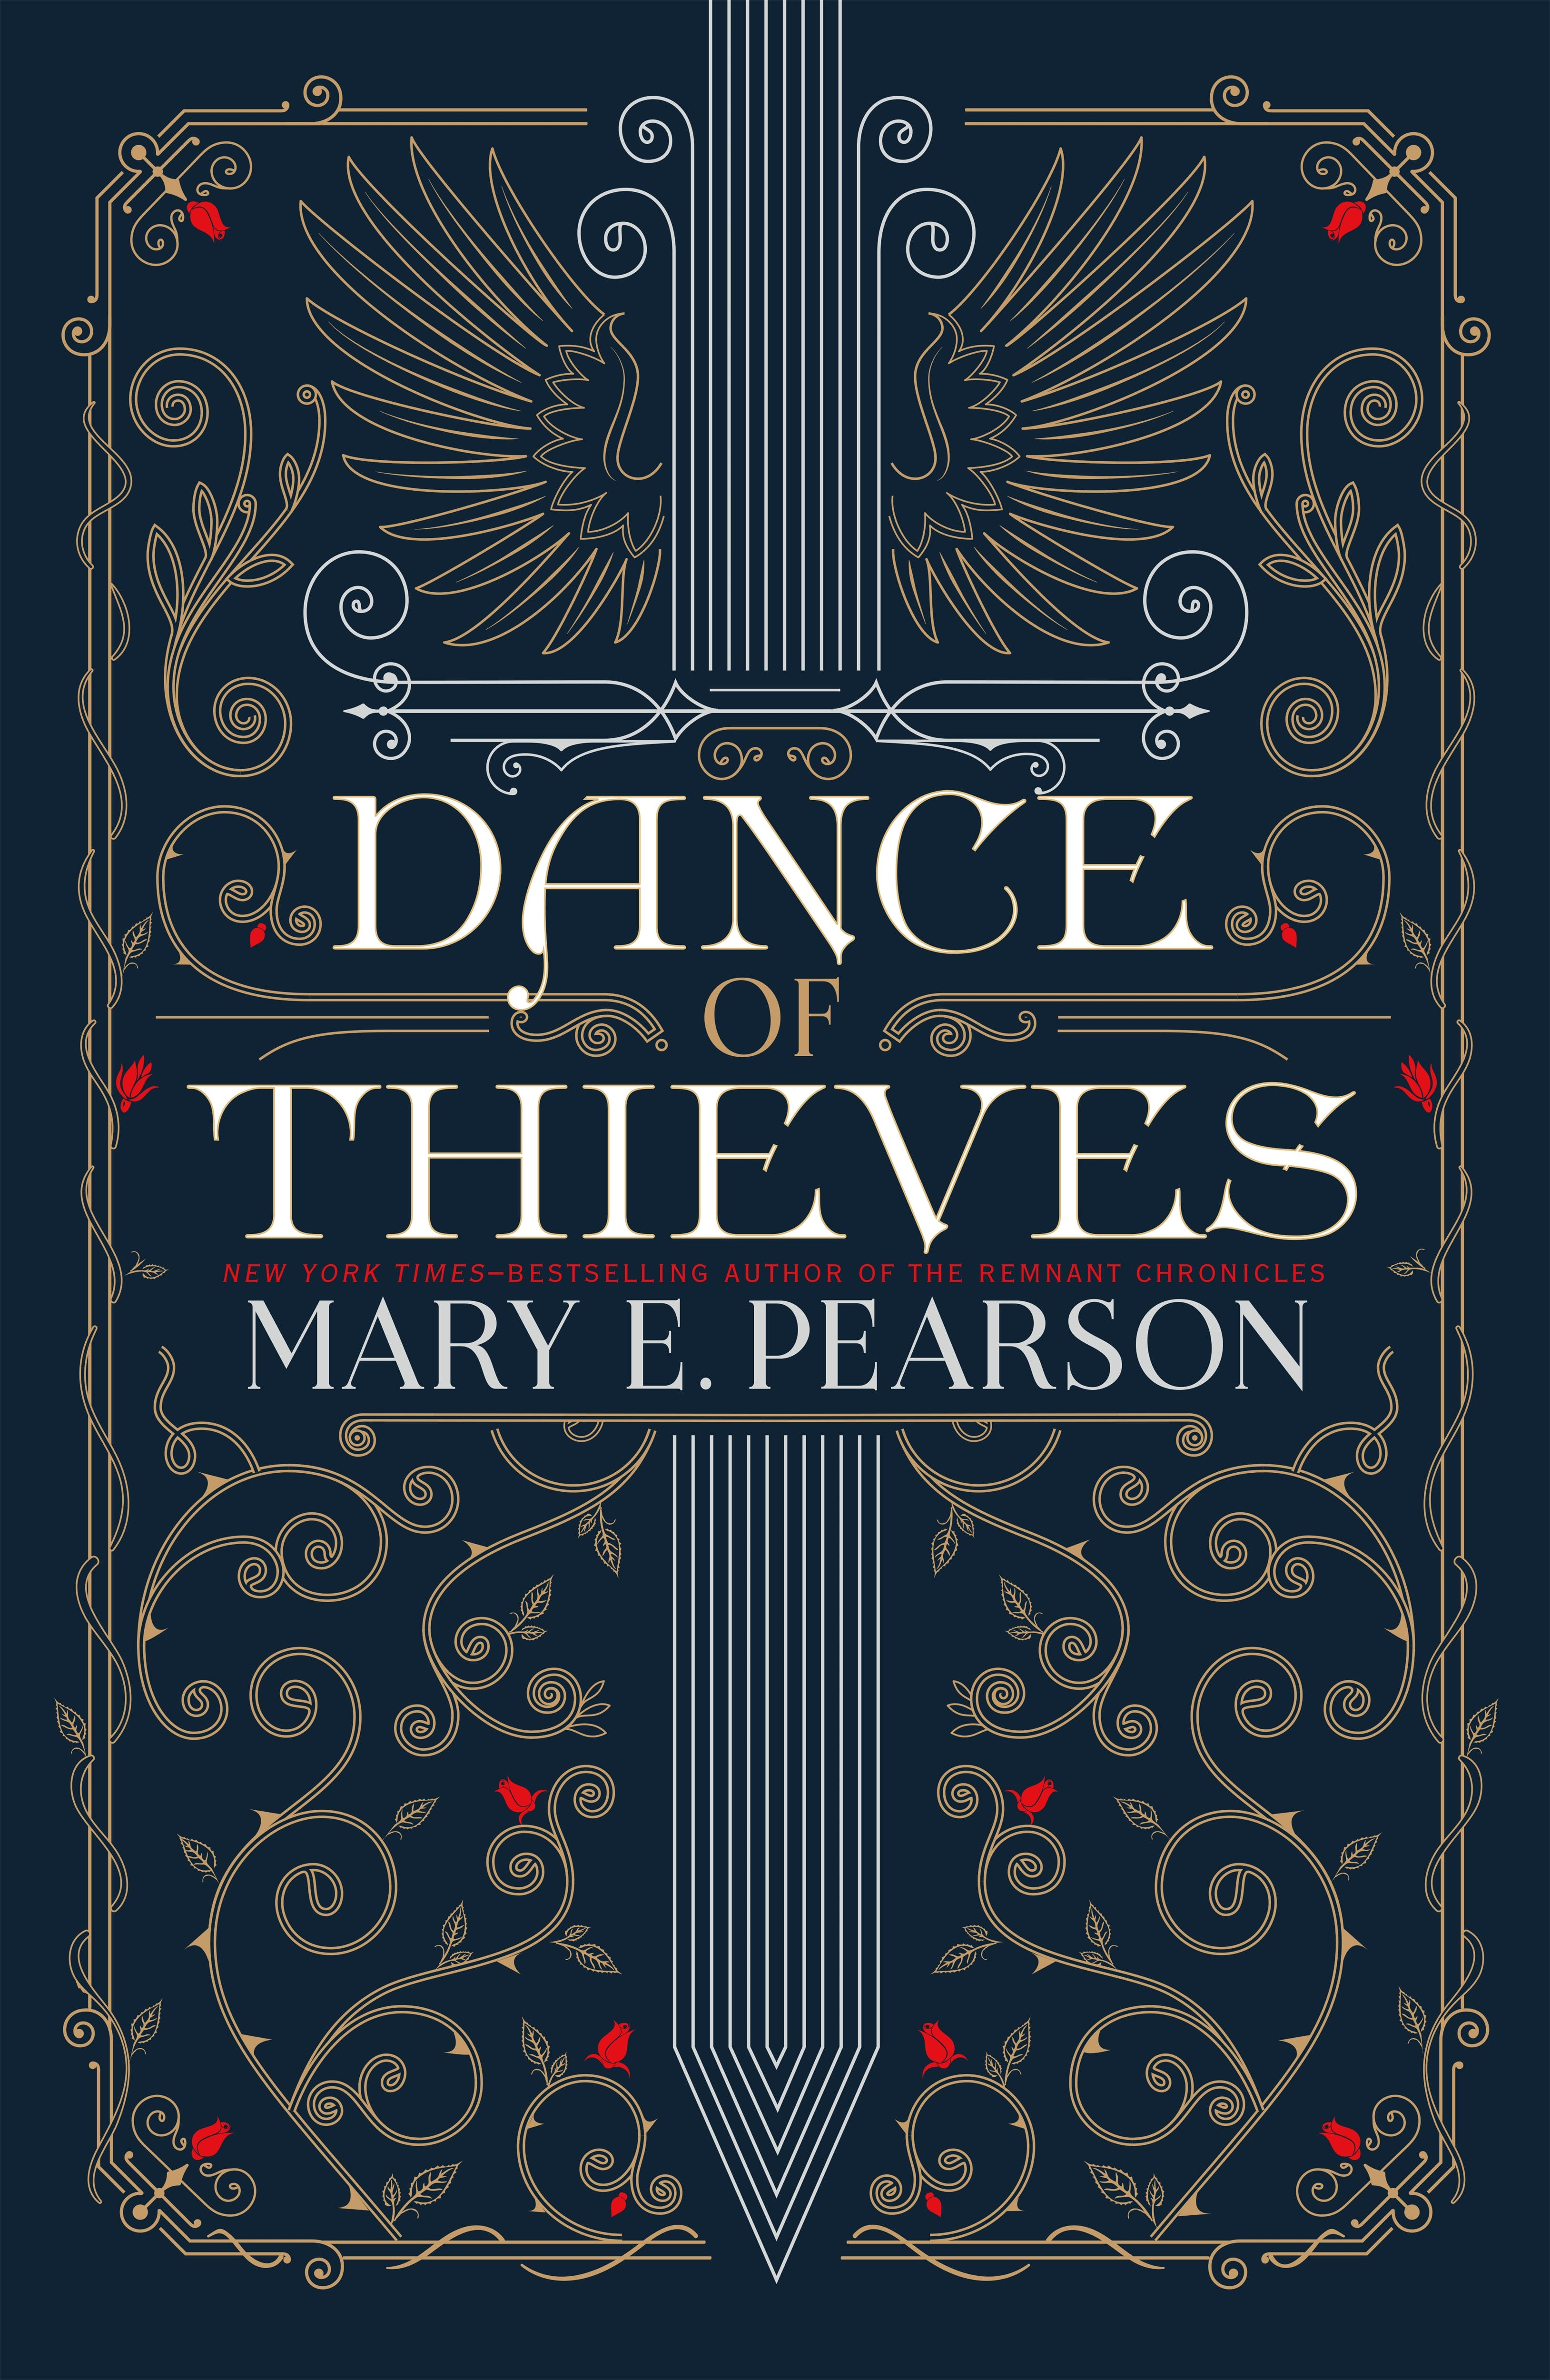 Image of Dance of Thieves